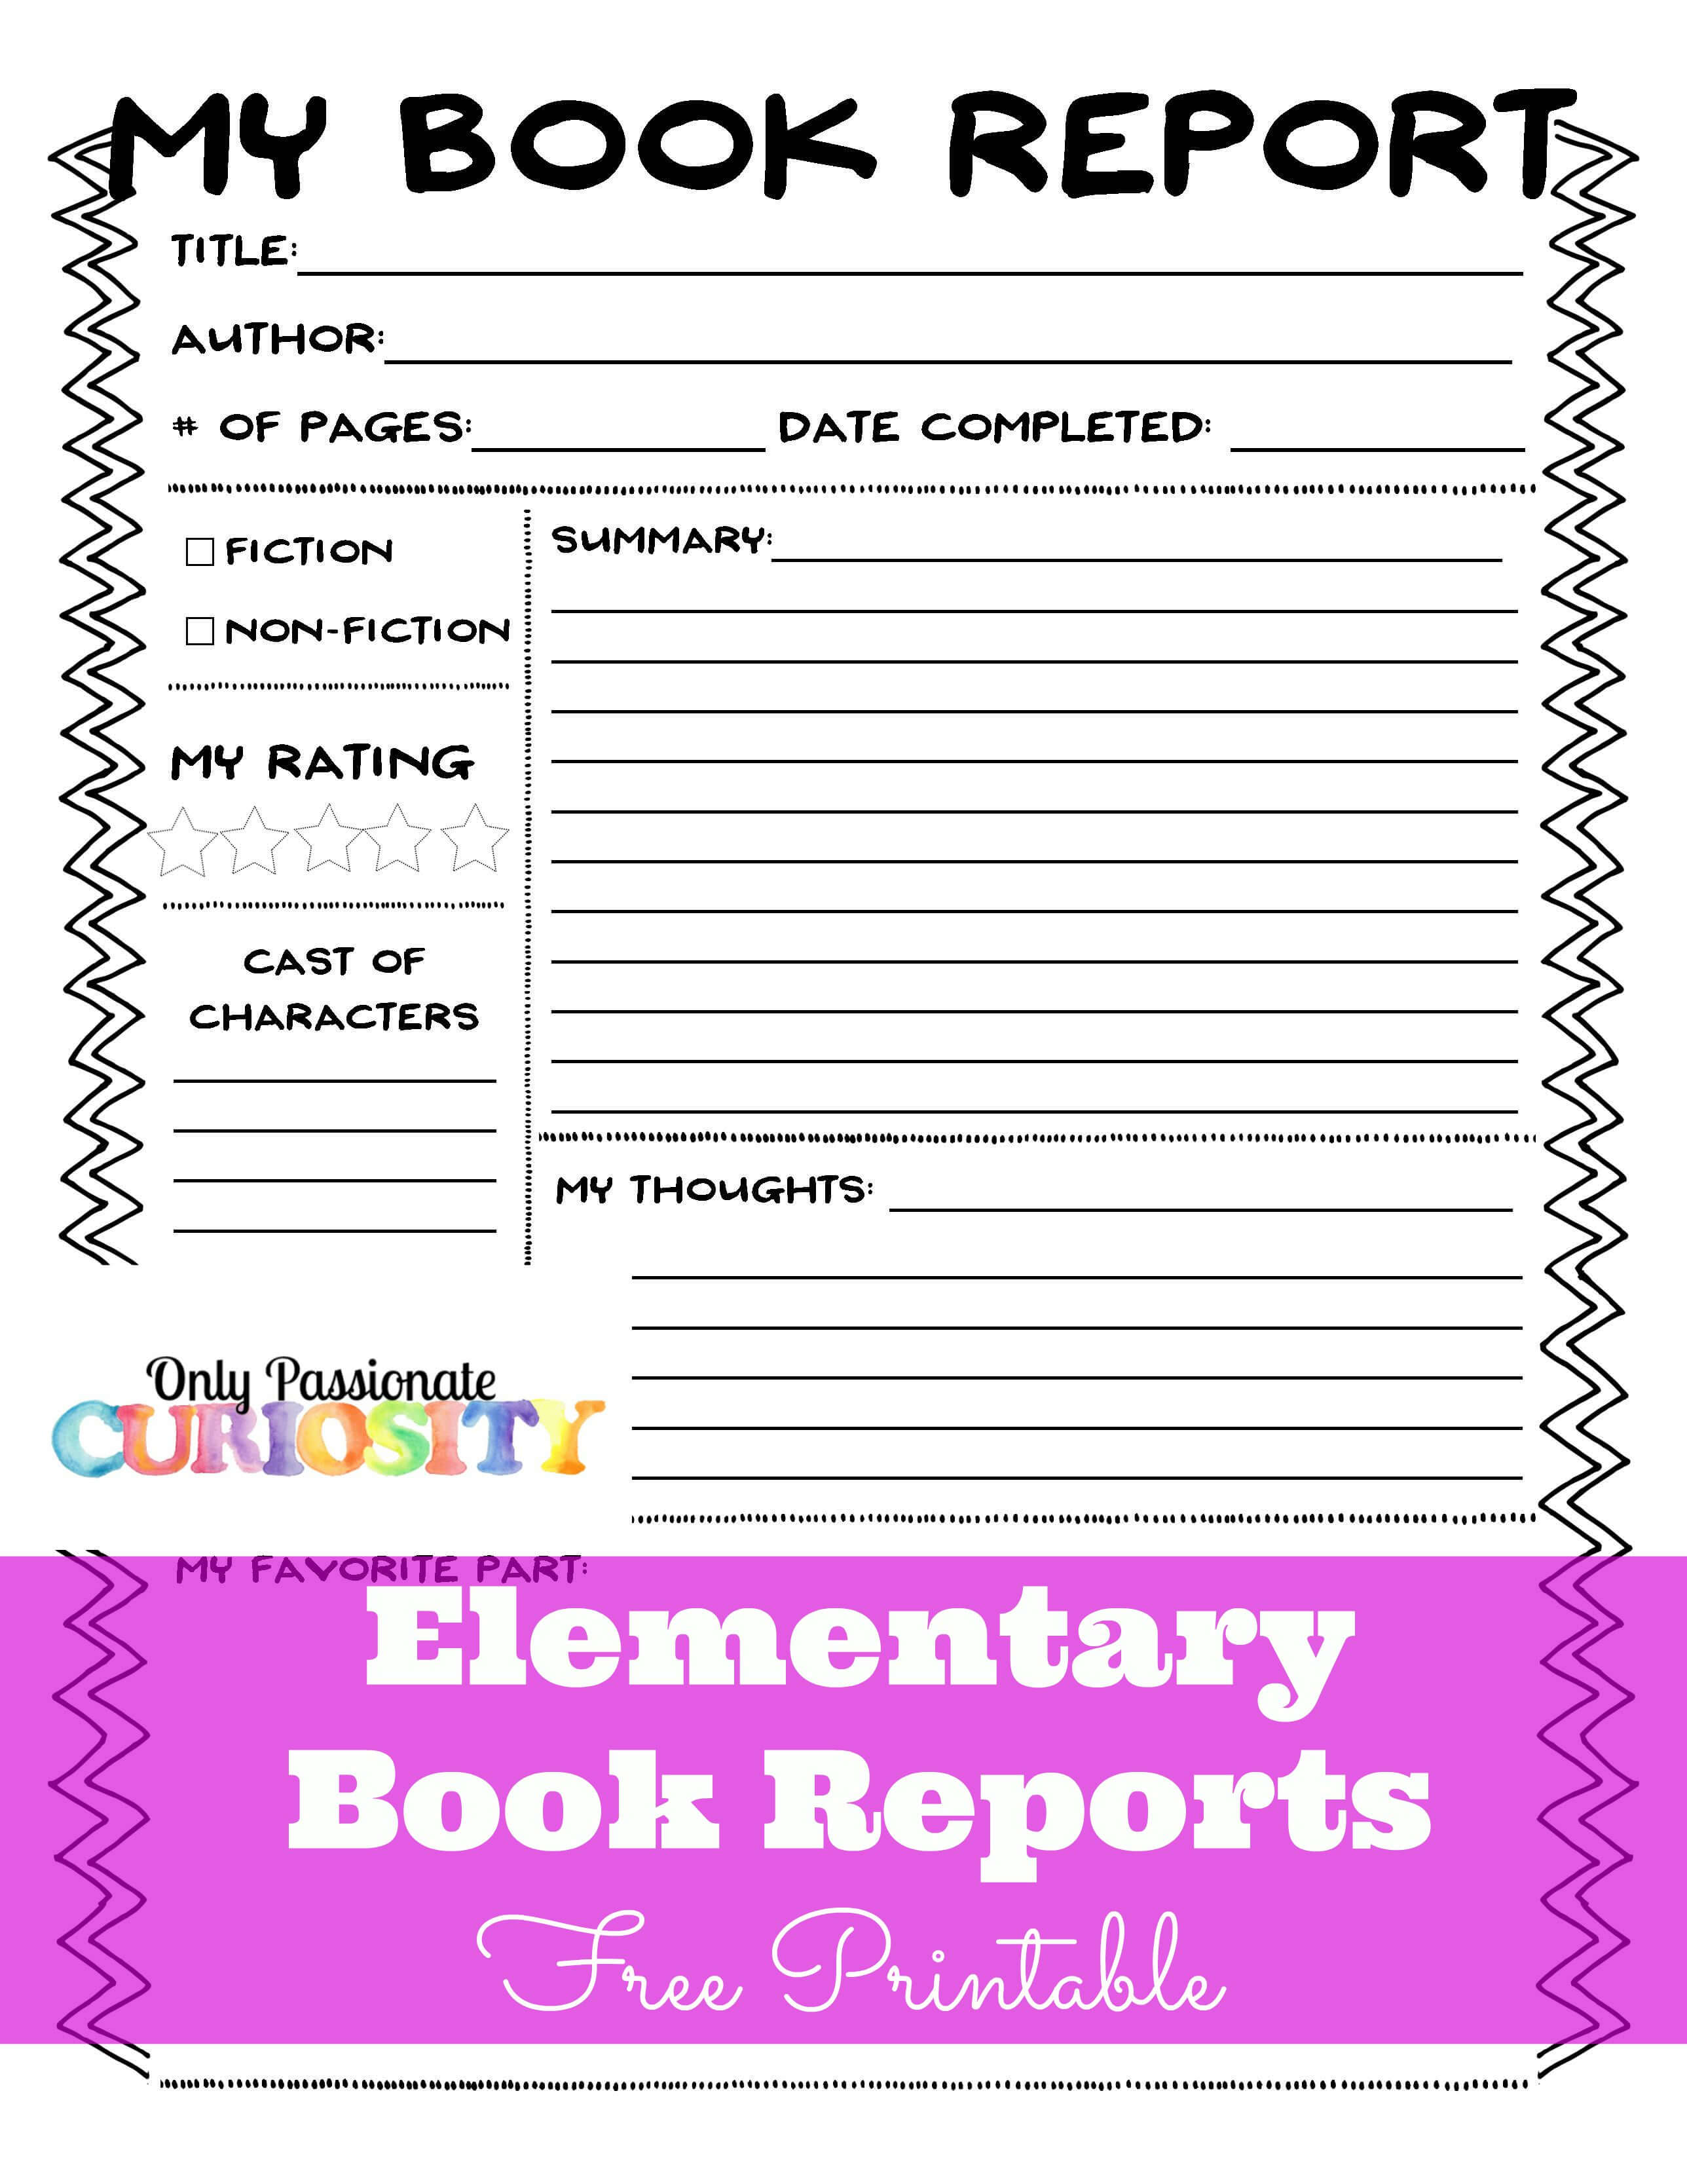 Sandwich Book Report Printout intended for Sandwich Book Report Printable Template